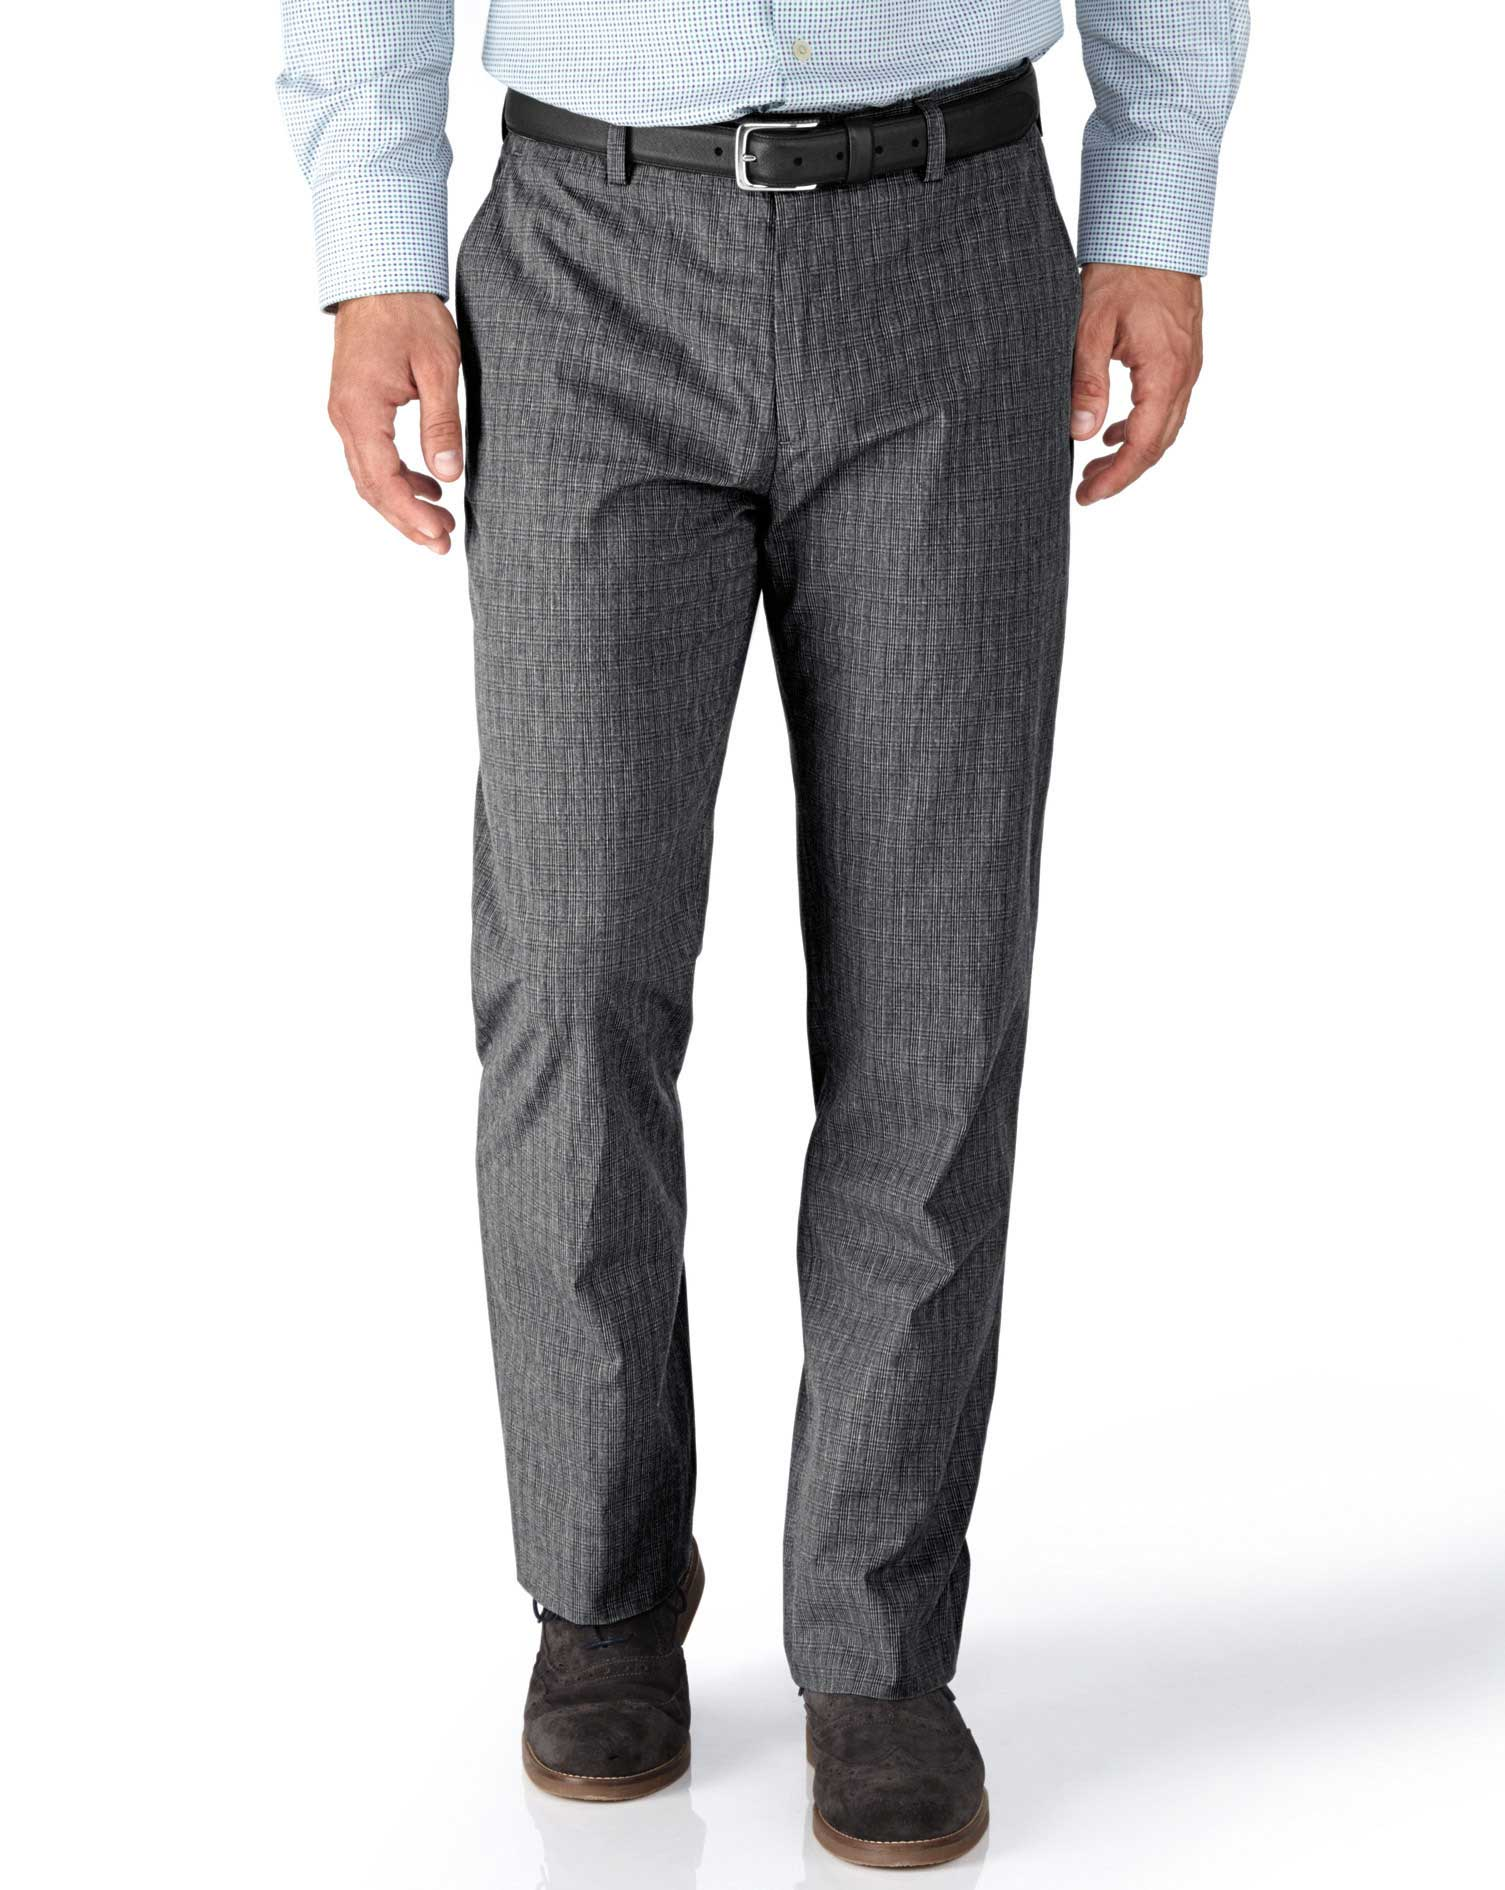 Grey Slim Fit Prince Of Wales Check Stretch Trousers Size W32 L32 by Charles Tyrwhitt